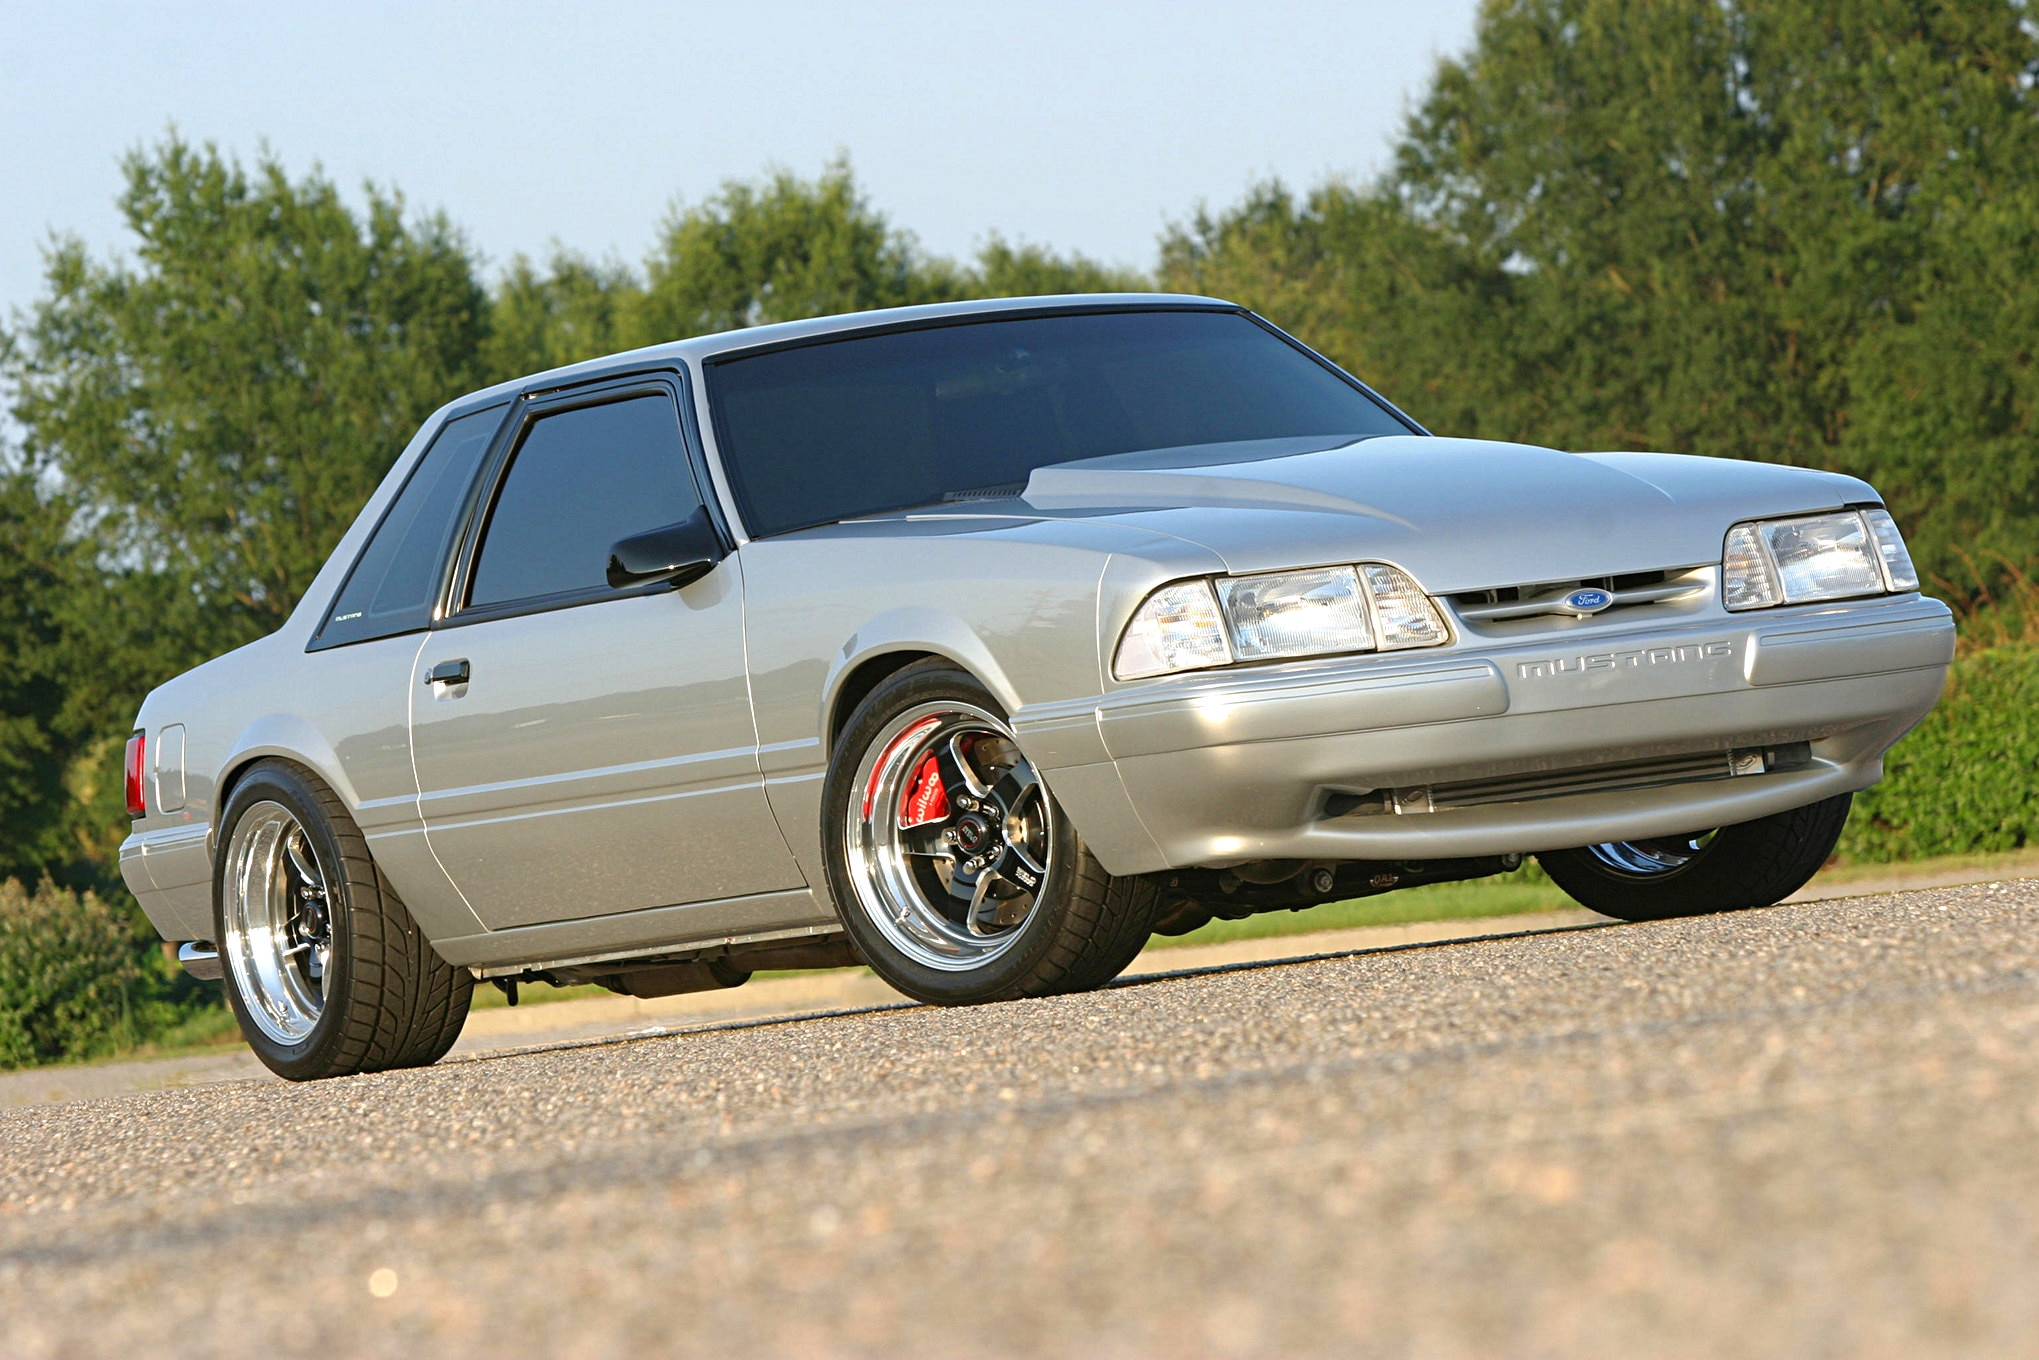 1991 Ford Mustang Lx Fox Body Front Passenger Side